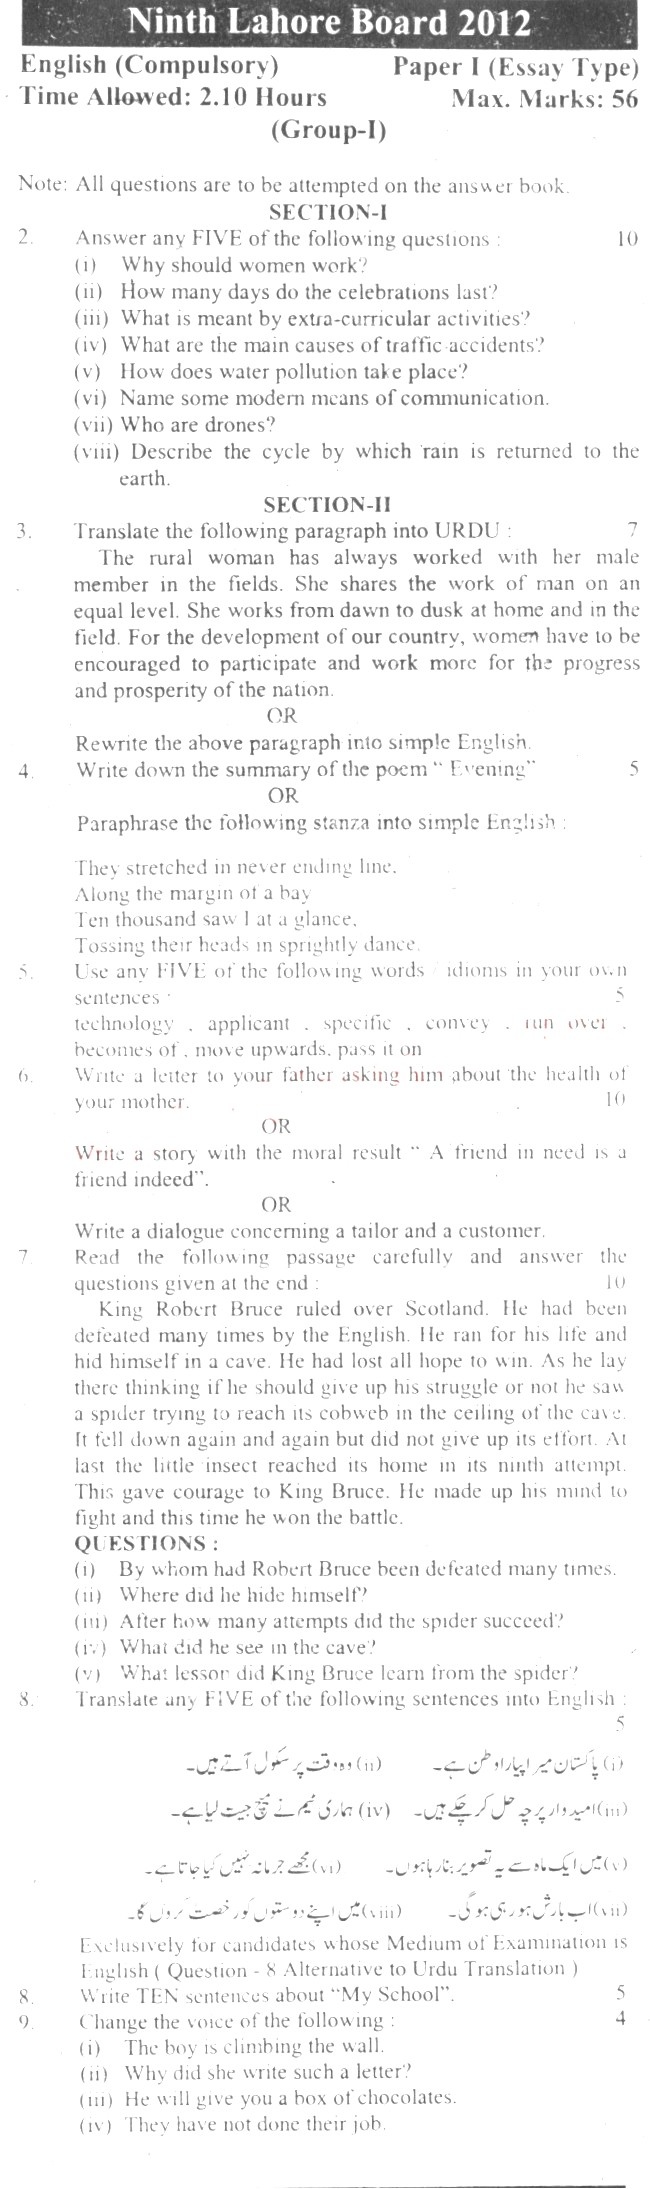 essays in english for class 9 • class 9 biology demo essay topics for english 101 they can take online learning help for writing essay in english.